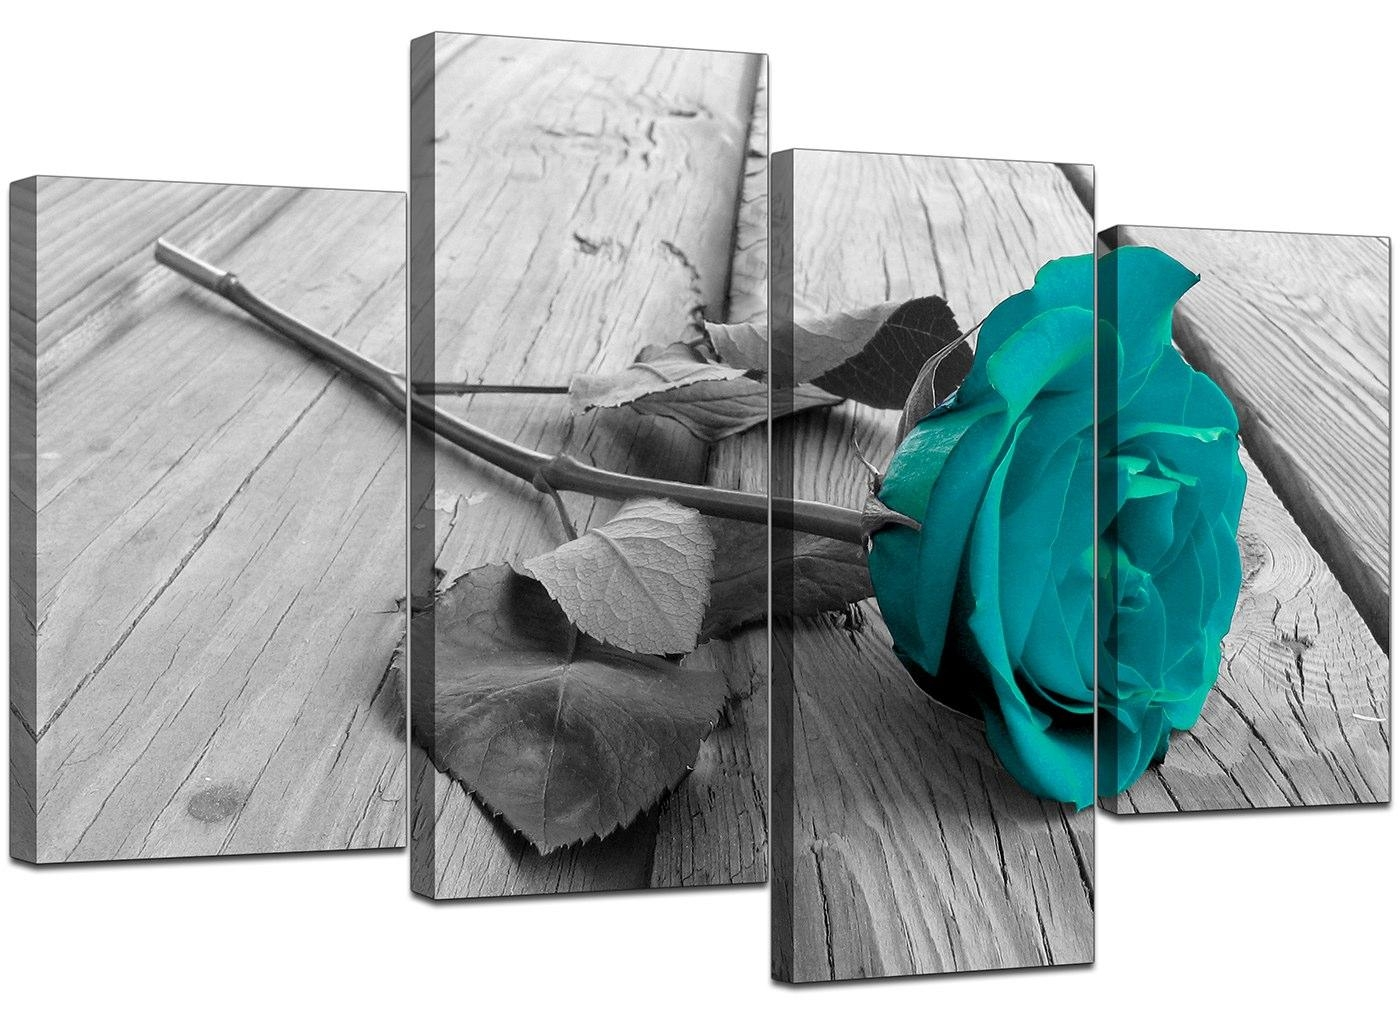 Canvas Prints Uk Of Teal Rose In Black & White For Your Bathroom For Teal Flower Canvas Wall Art (View 13 of 20)